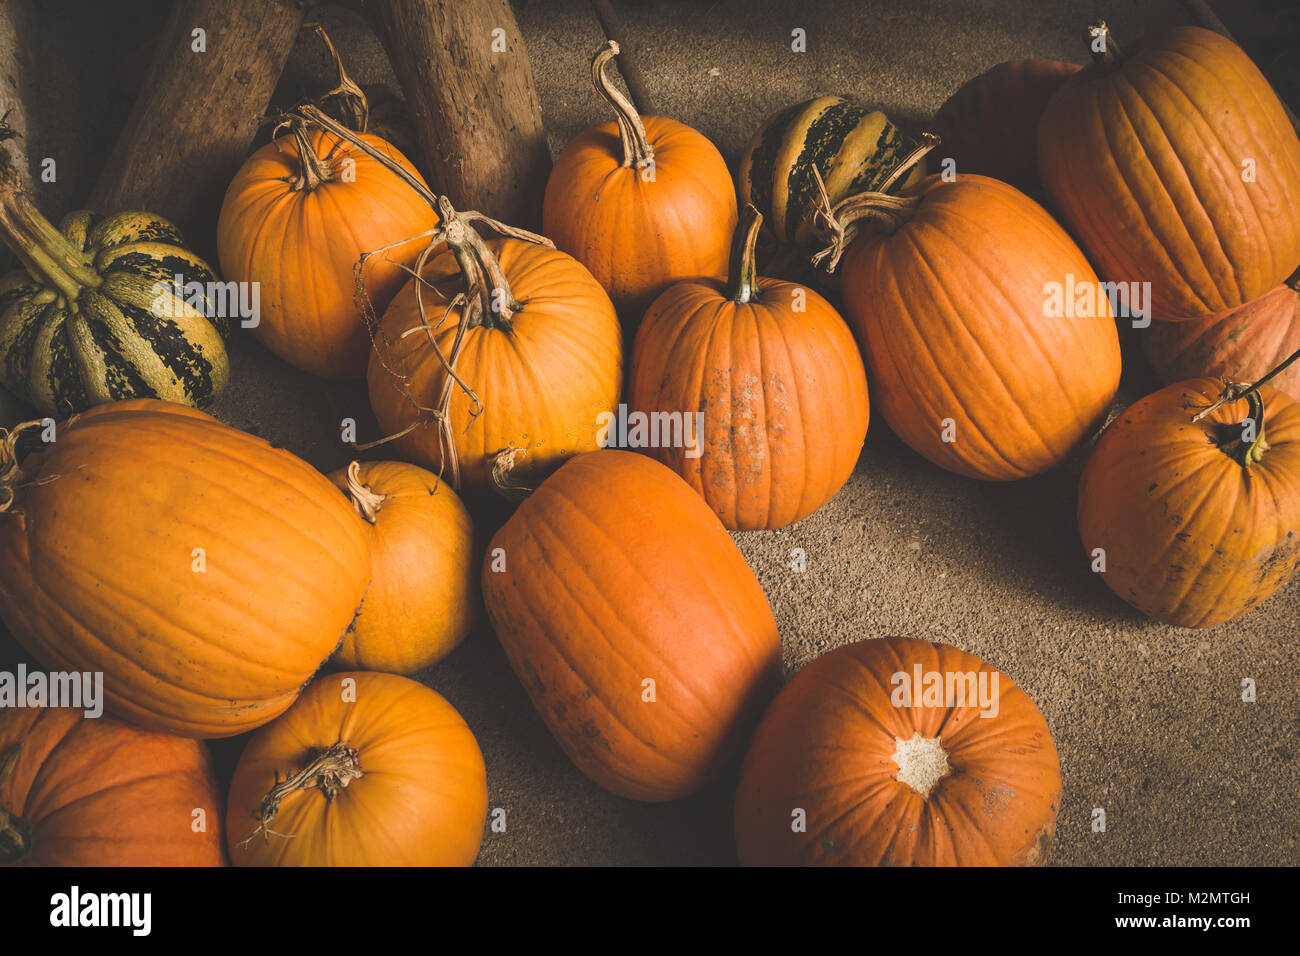 Autumn Pumpkin Thanksgiving and Halloween Background - orange pumpkins over wooden table. Toned Image. - Stock Image